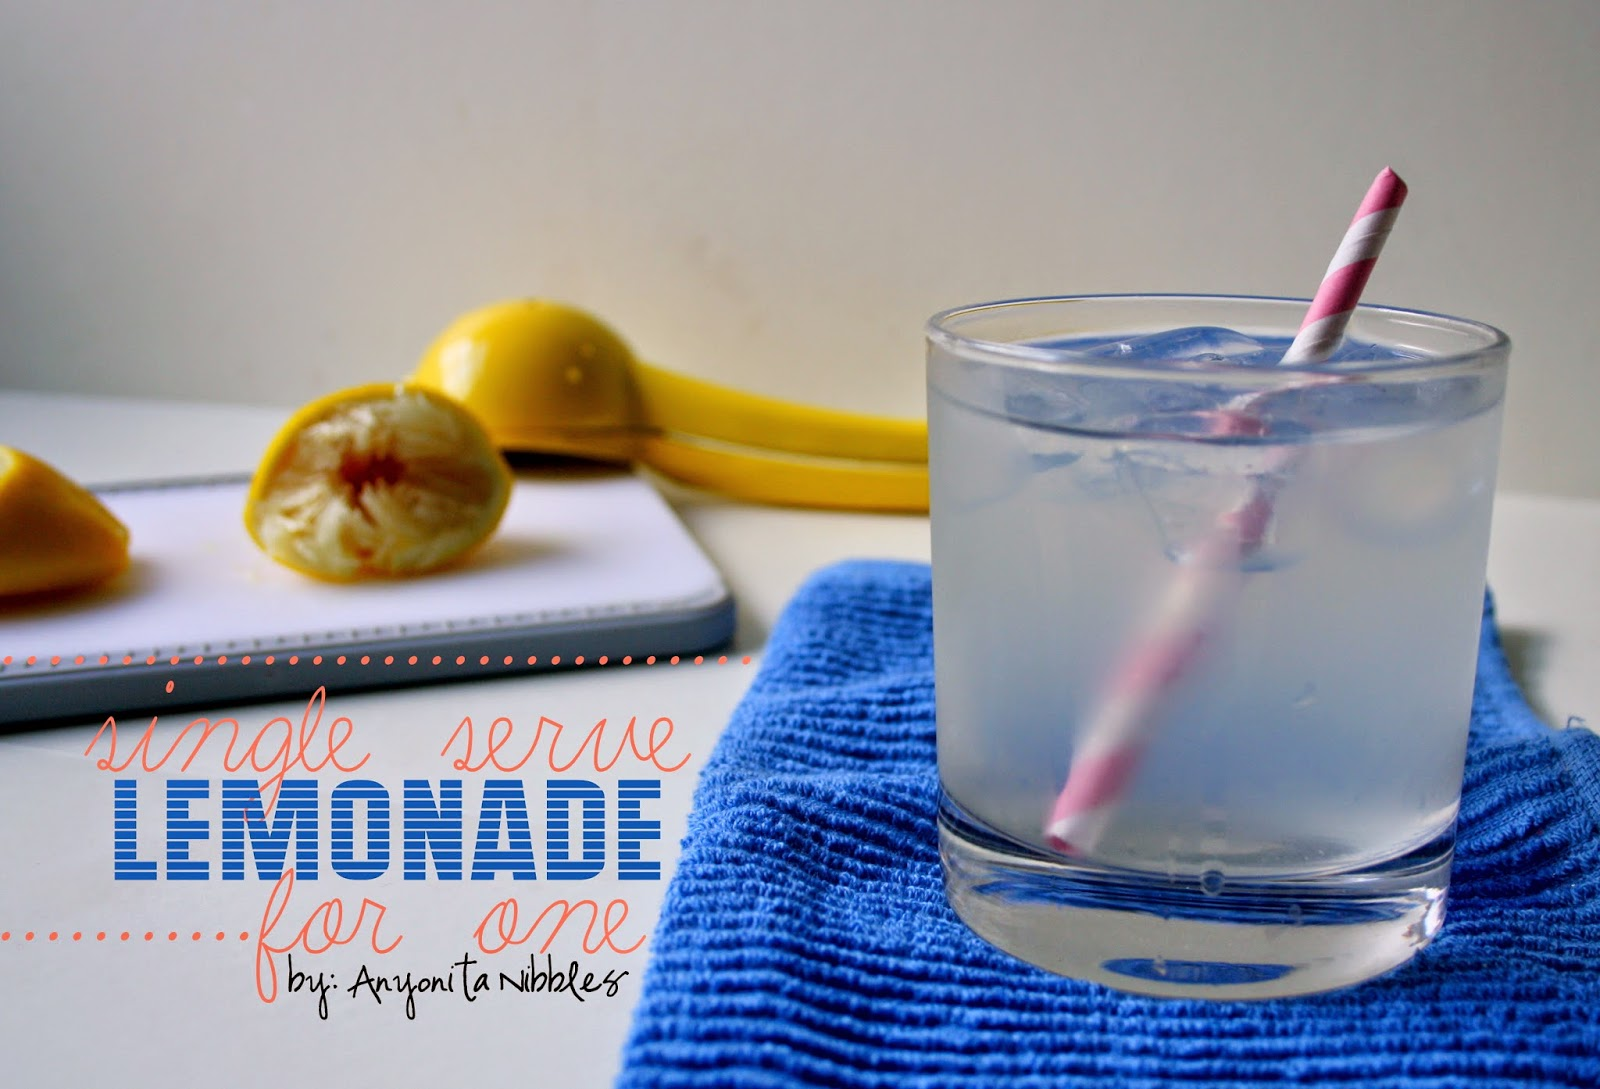 American Style Single Serve Lemonade for One from Anyonita Nibbles